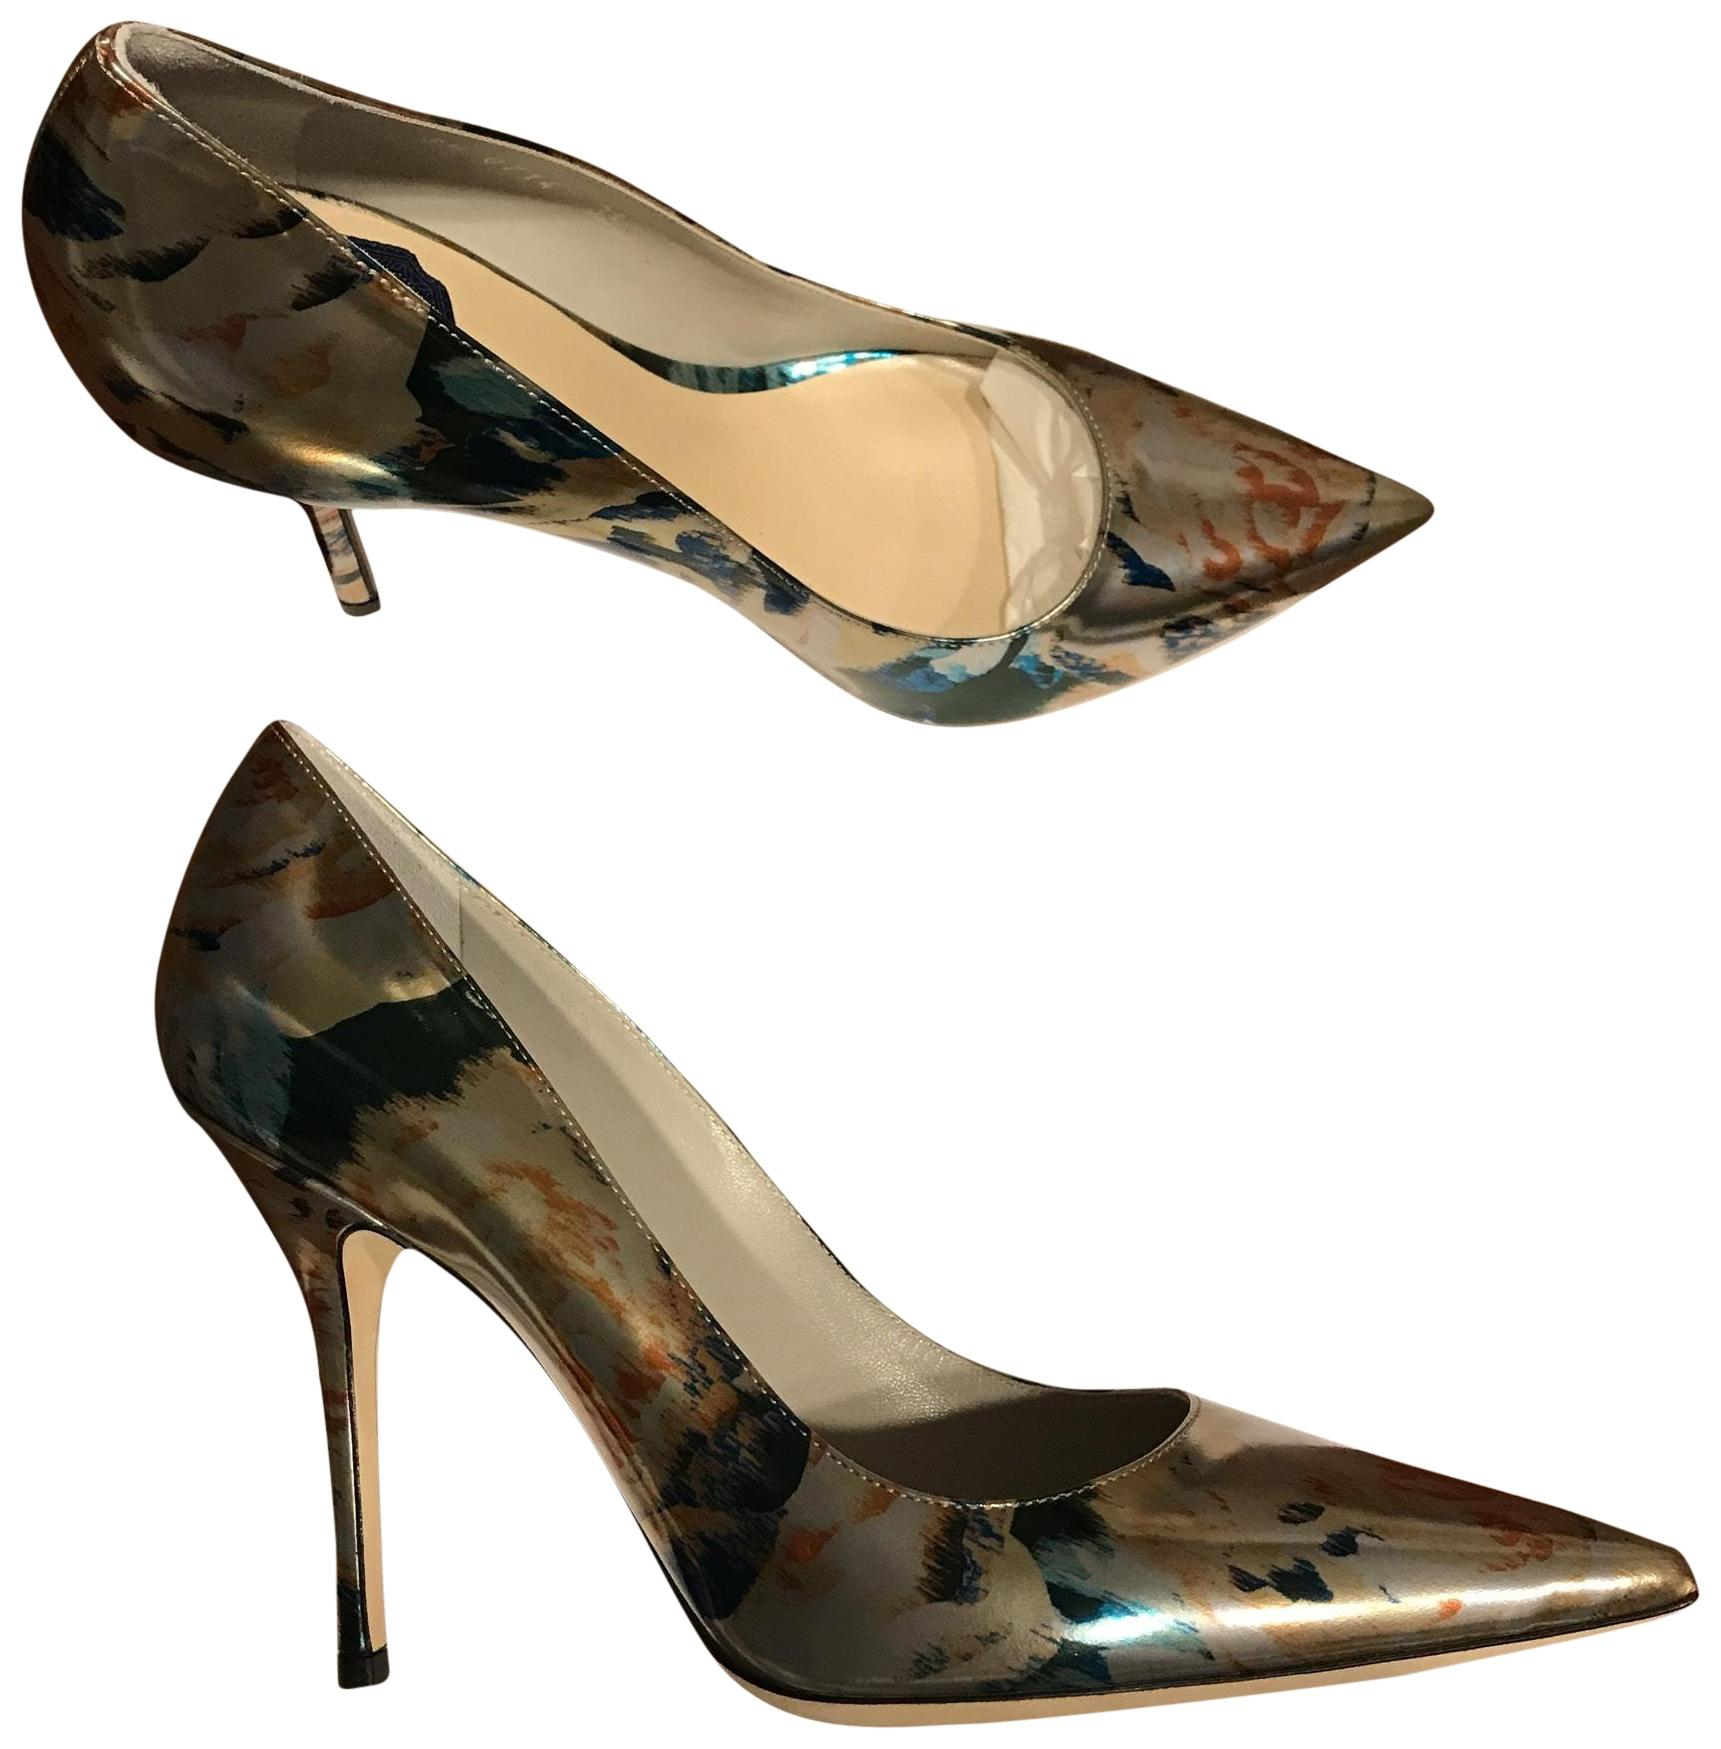 Dior Silver Multi Color Cherie Pointy Pumps Size EU 38.5 (Approx. US 8.5) Regular (M, B)